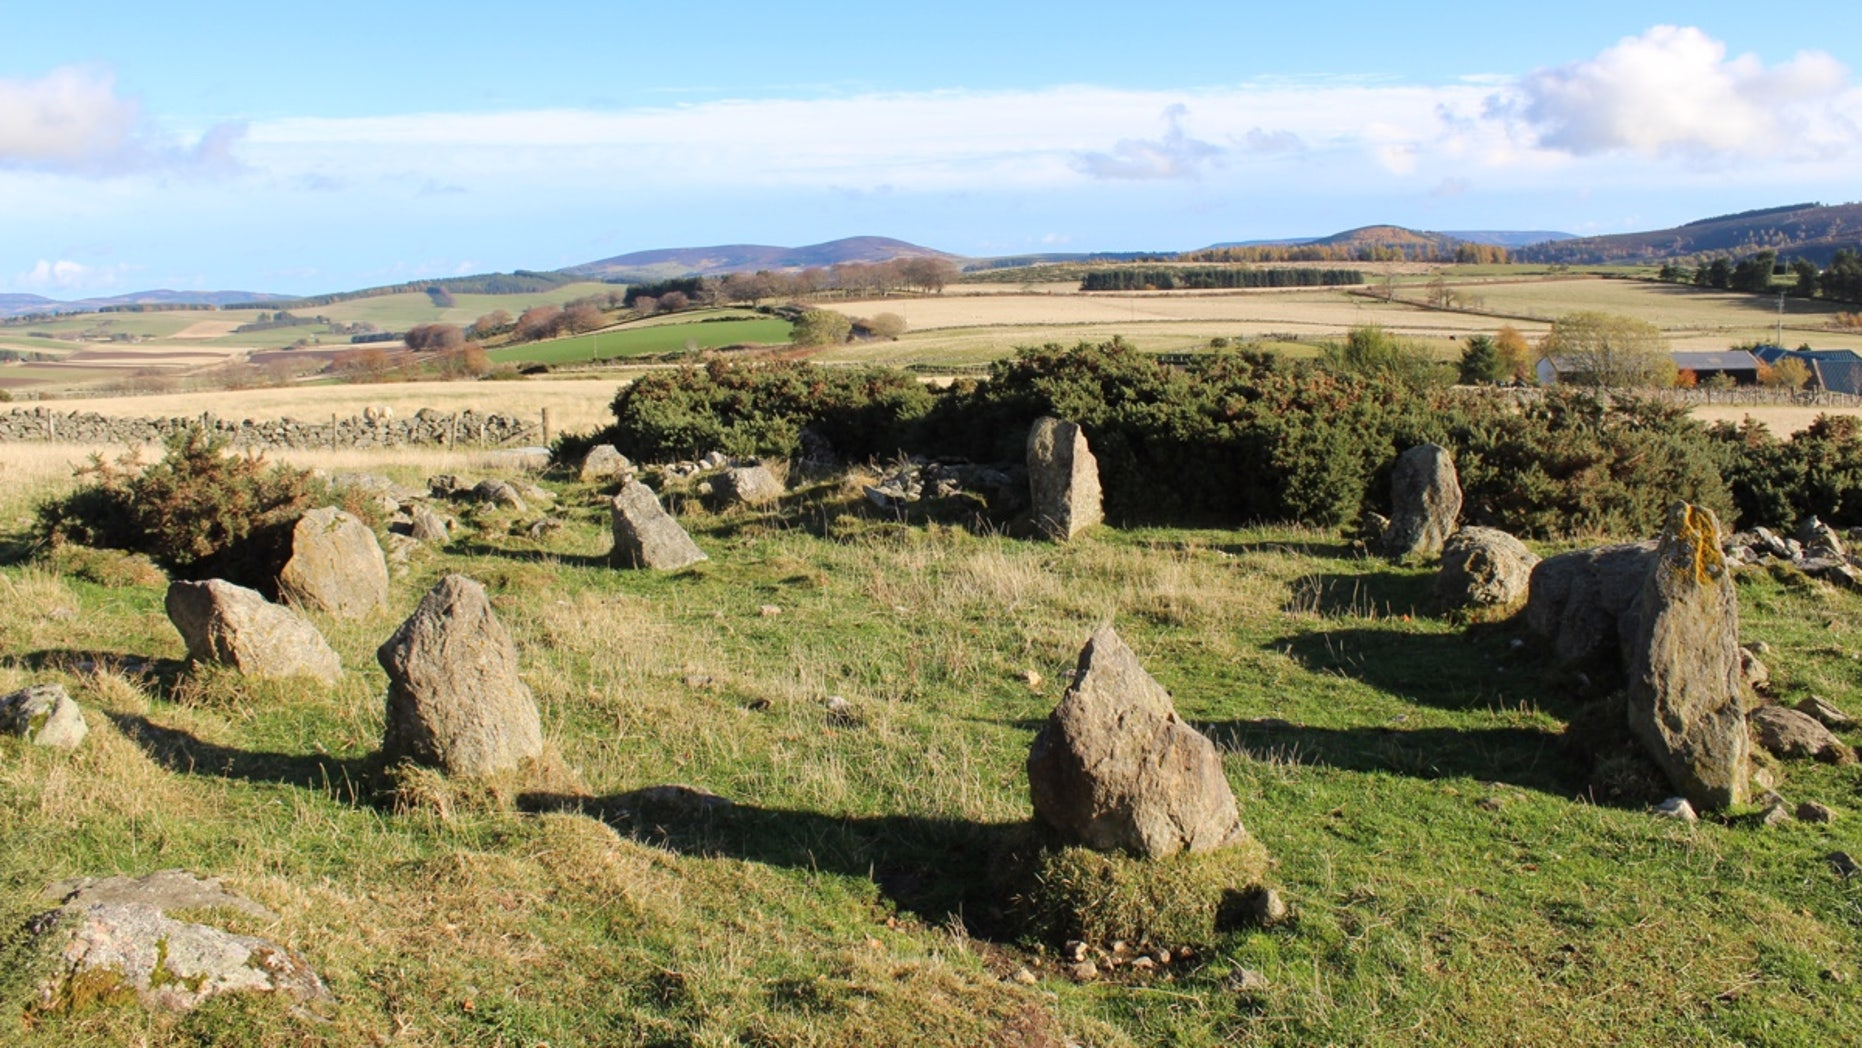 The Neolithic stone circle near the village of Alford, west of Aberdeen, was unknown to archaeologists until recently – but well-known to local people.